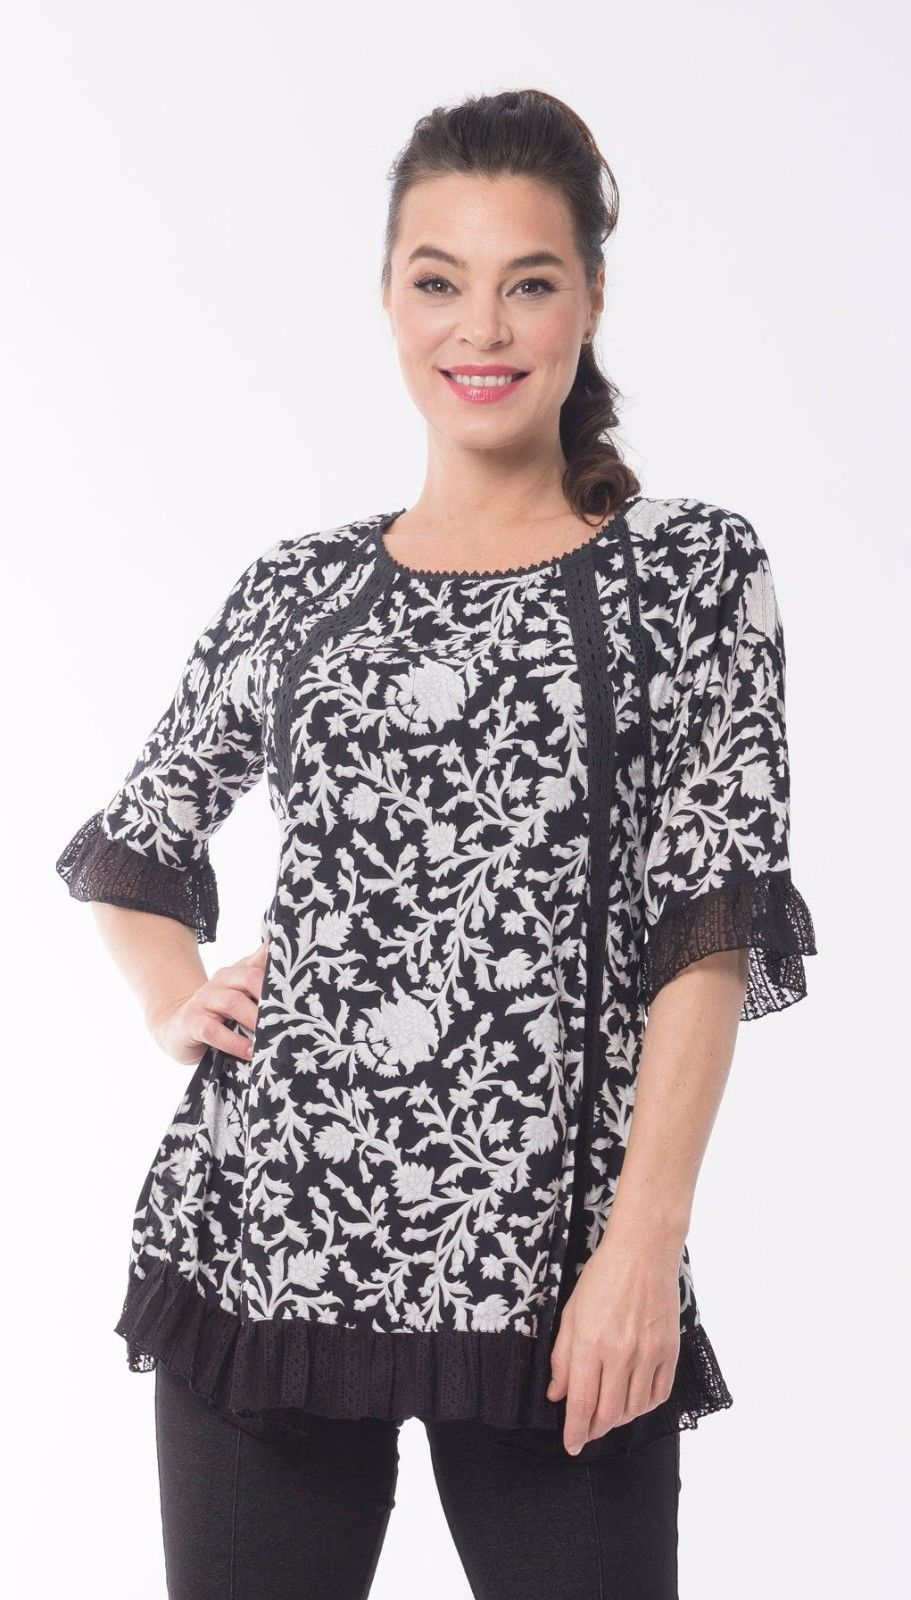 Klee-Flared-Tunic-in-Black-and-White-Size-14-by-Orientique-382138756592